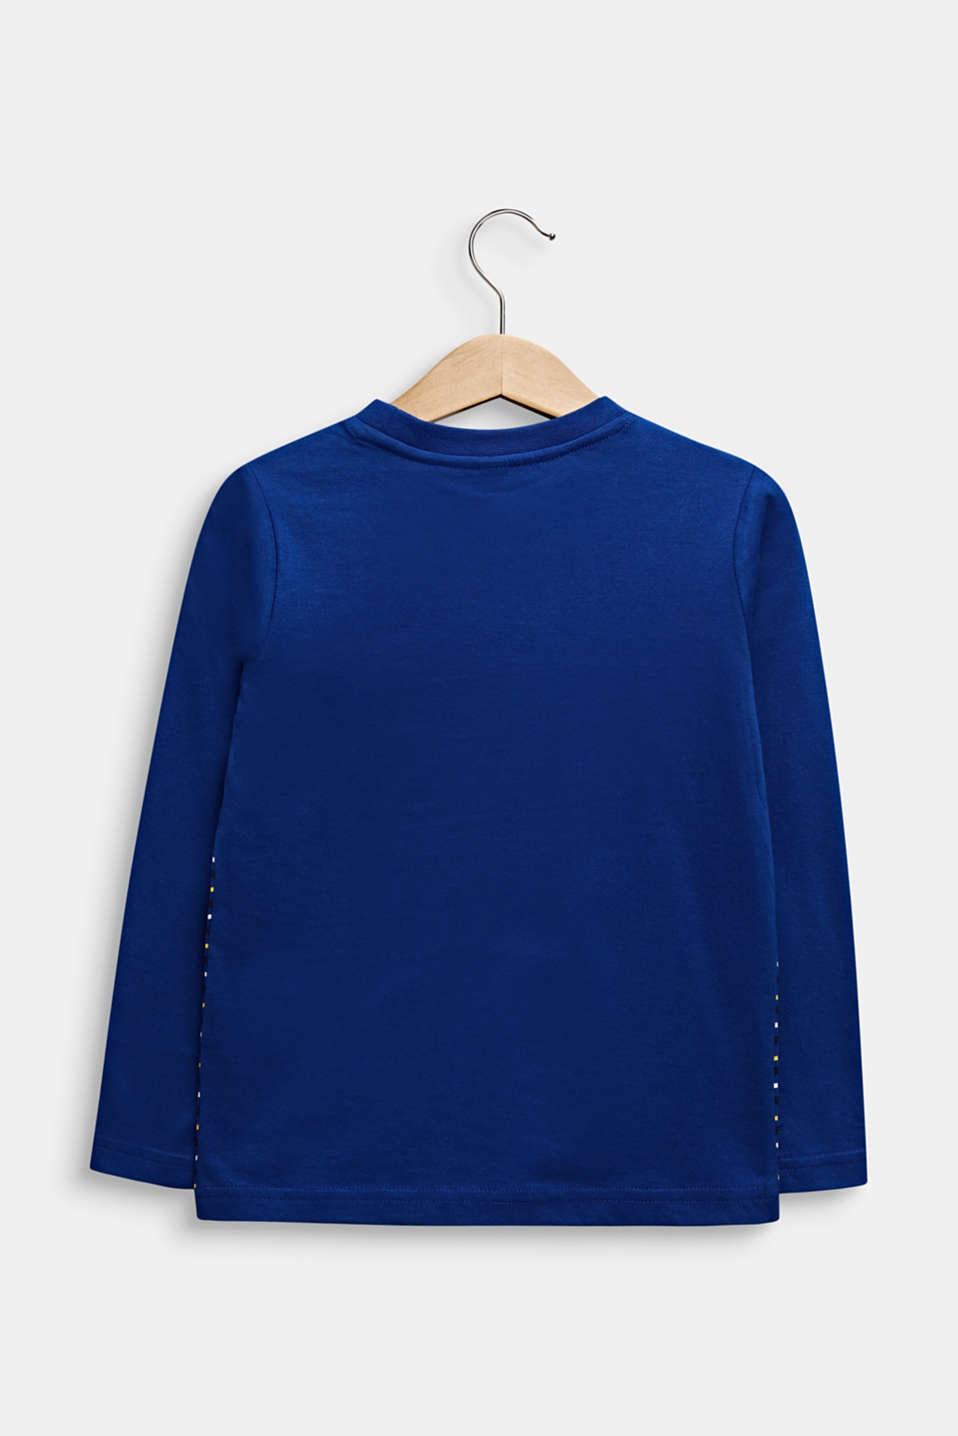 Long sleeve top with stripes, 100% cotton, INFINITY BLUE, detail image number 1